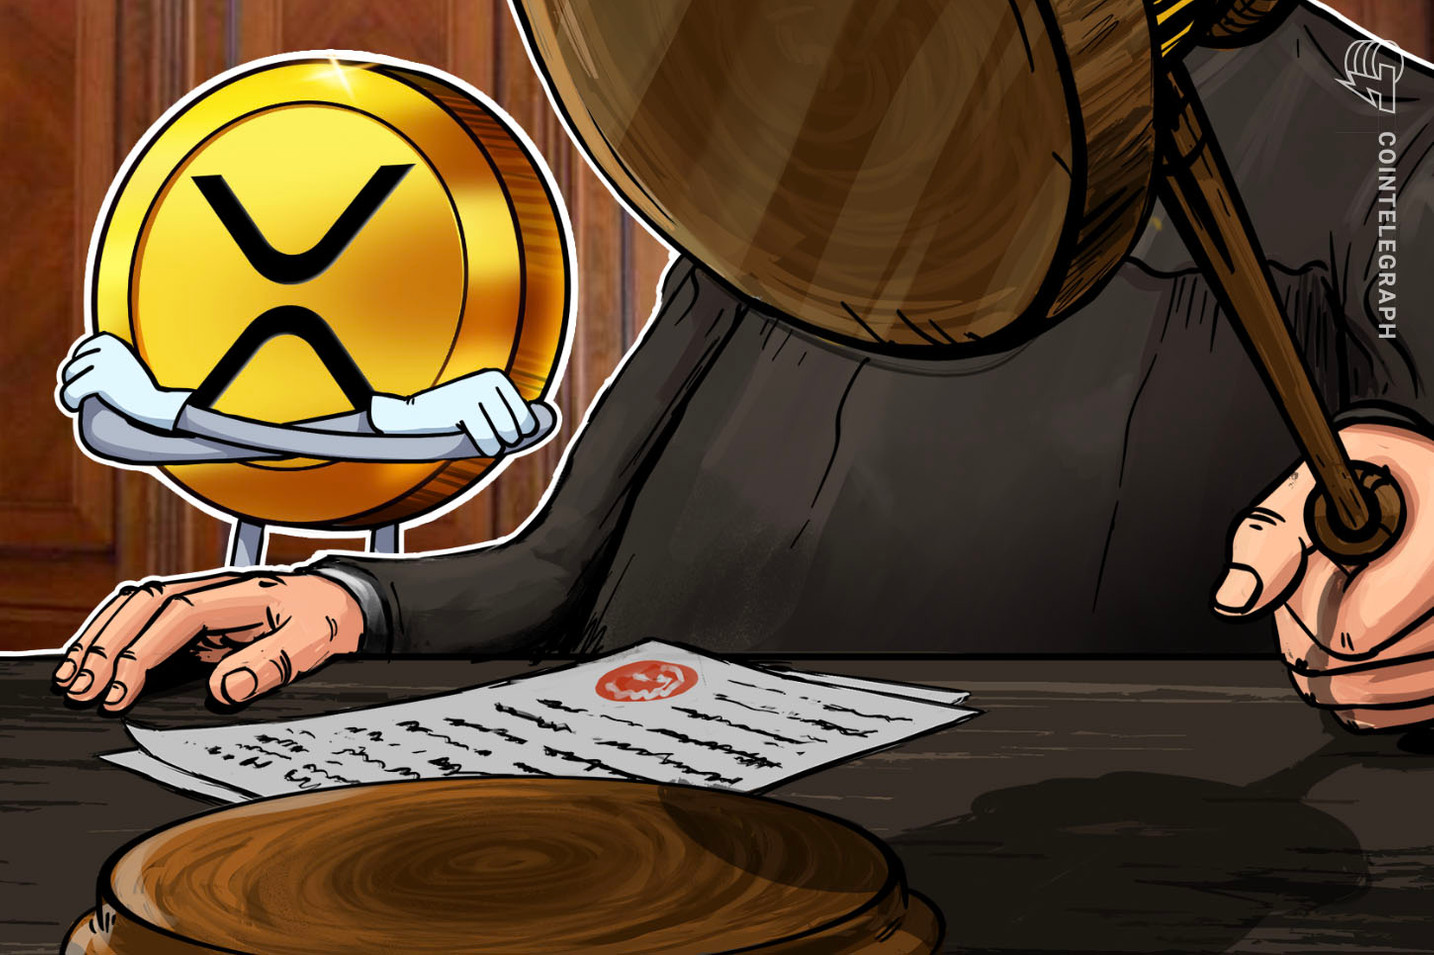 SEC unveils suit against Ripple, calling XRP a '$1.3B unregistered securities offering'